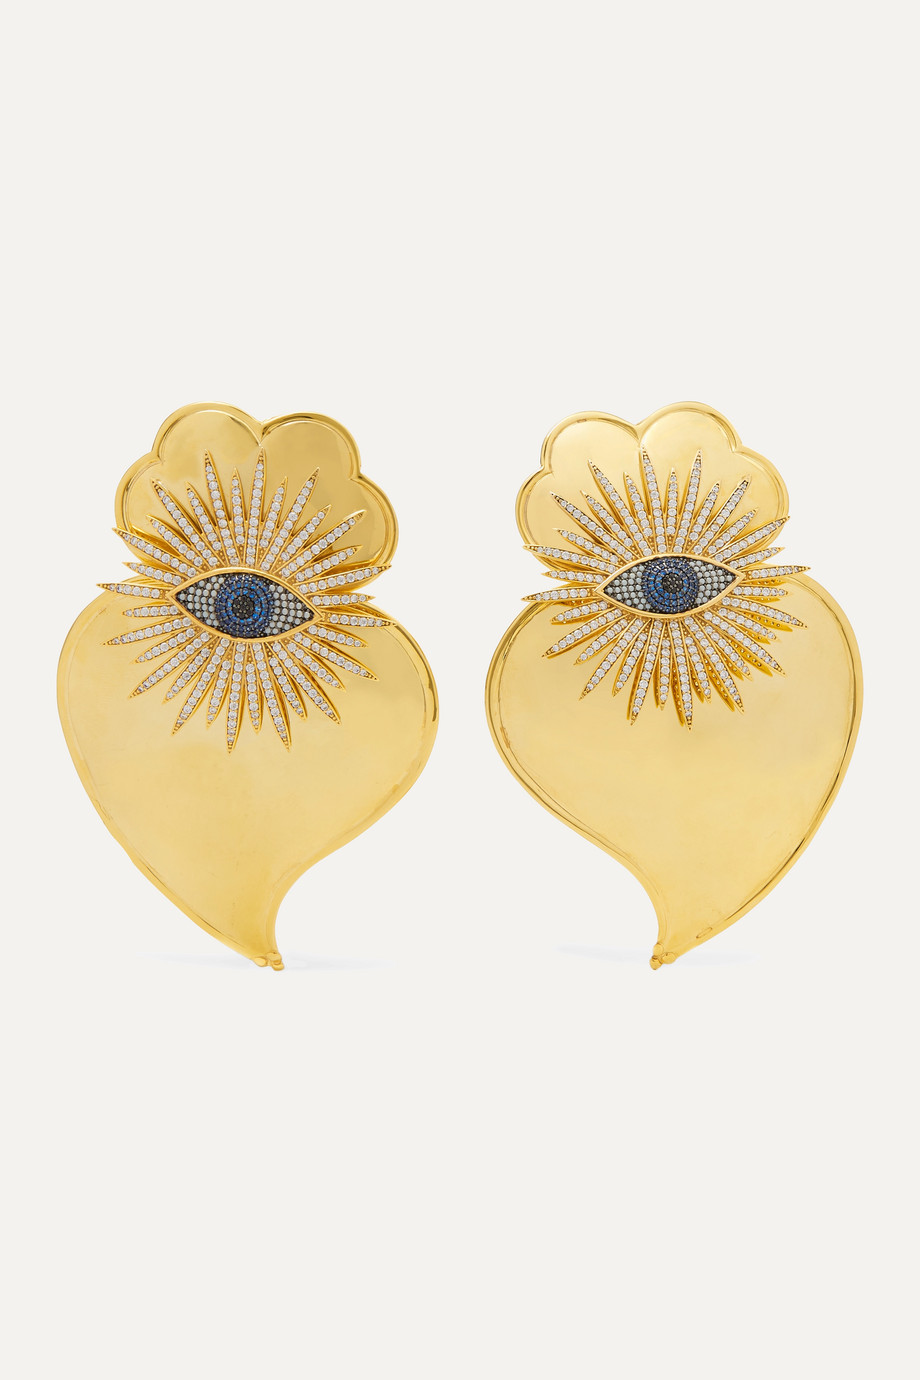 Begüm Khan Evil Eye Cuore Sacro gold-plated crystal clip earrings